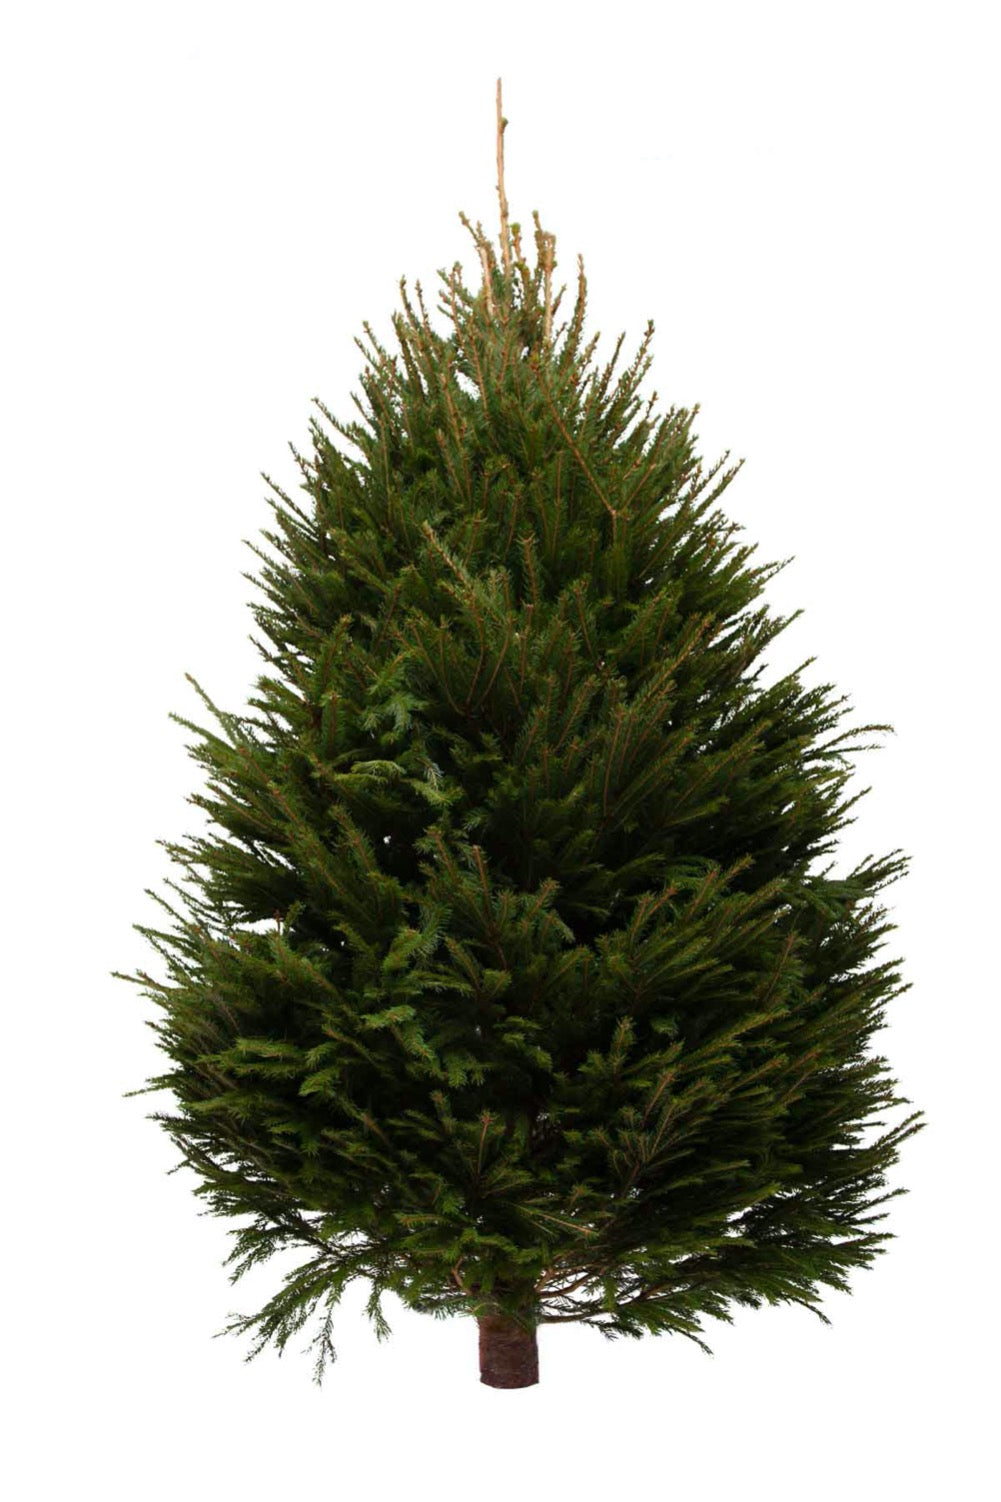 11ft Norway Spruce Christmas Tree from Pines and Needles